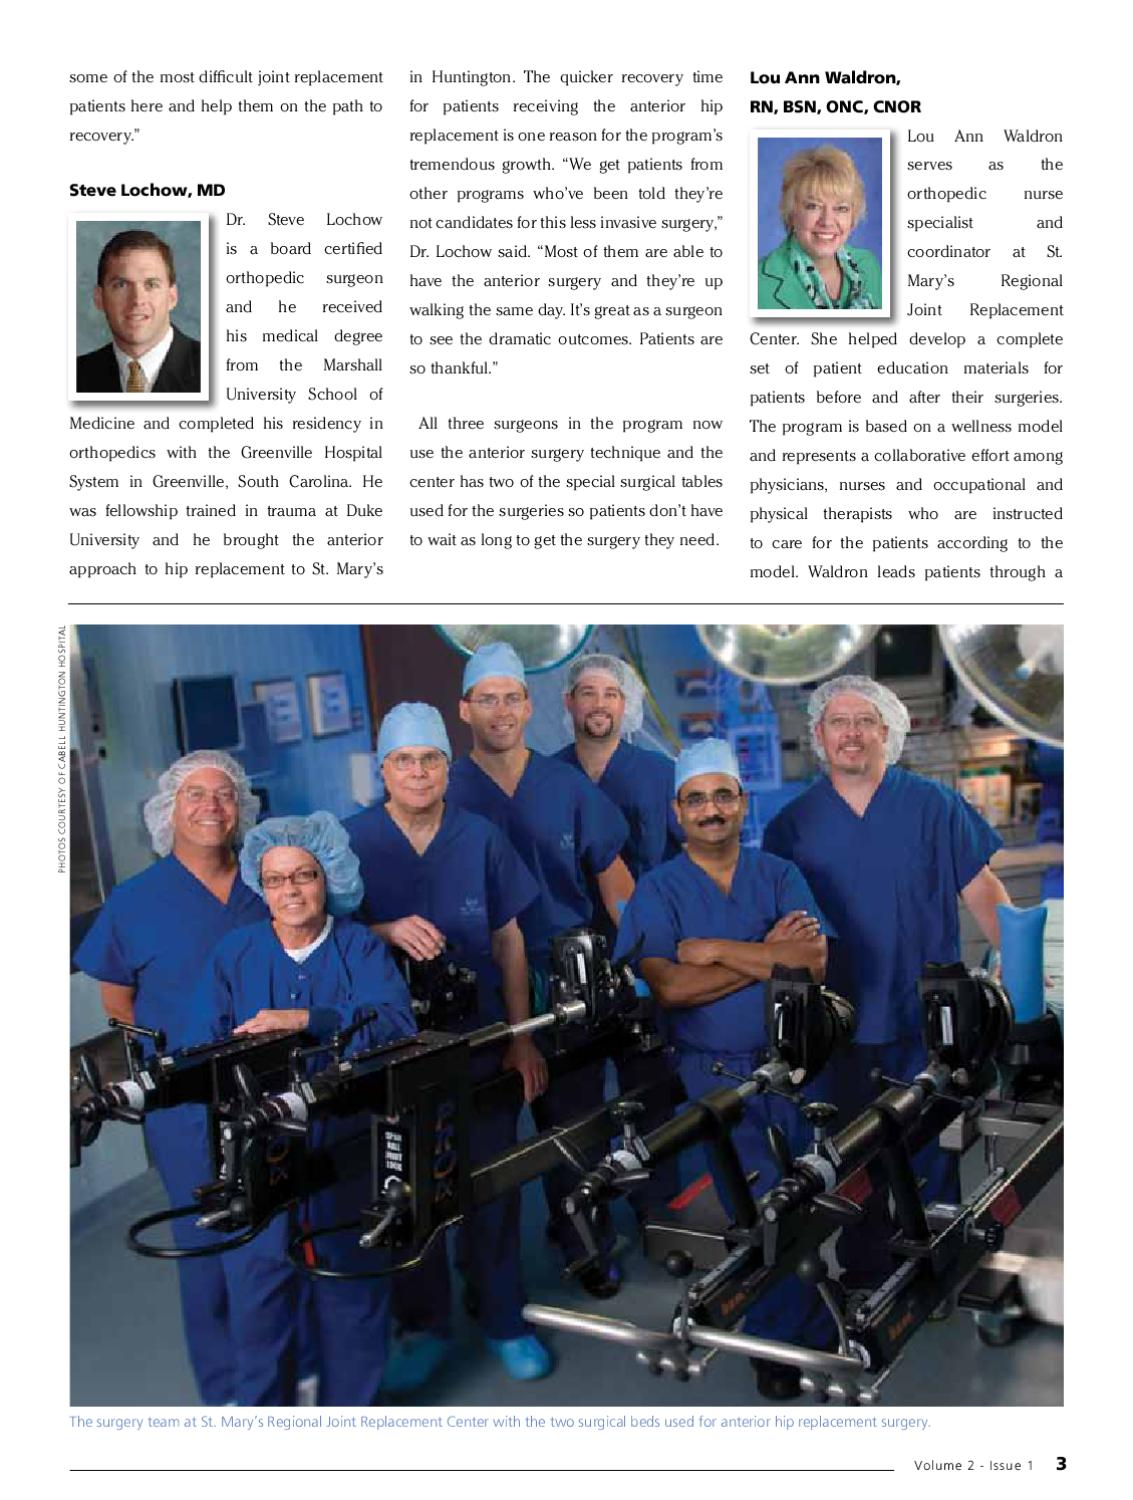 WV Physician Magazine Volume 2, Issue 1 by P  J  Hutton - issuu